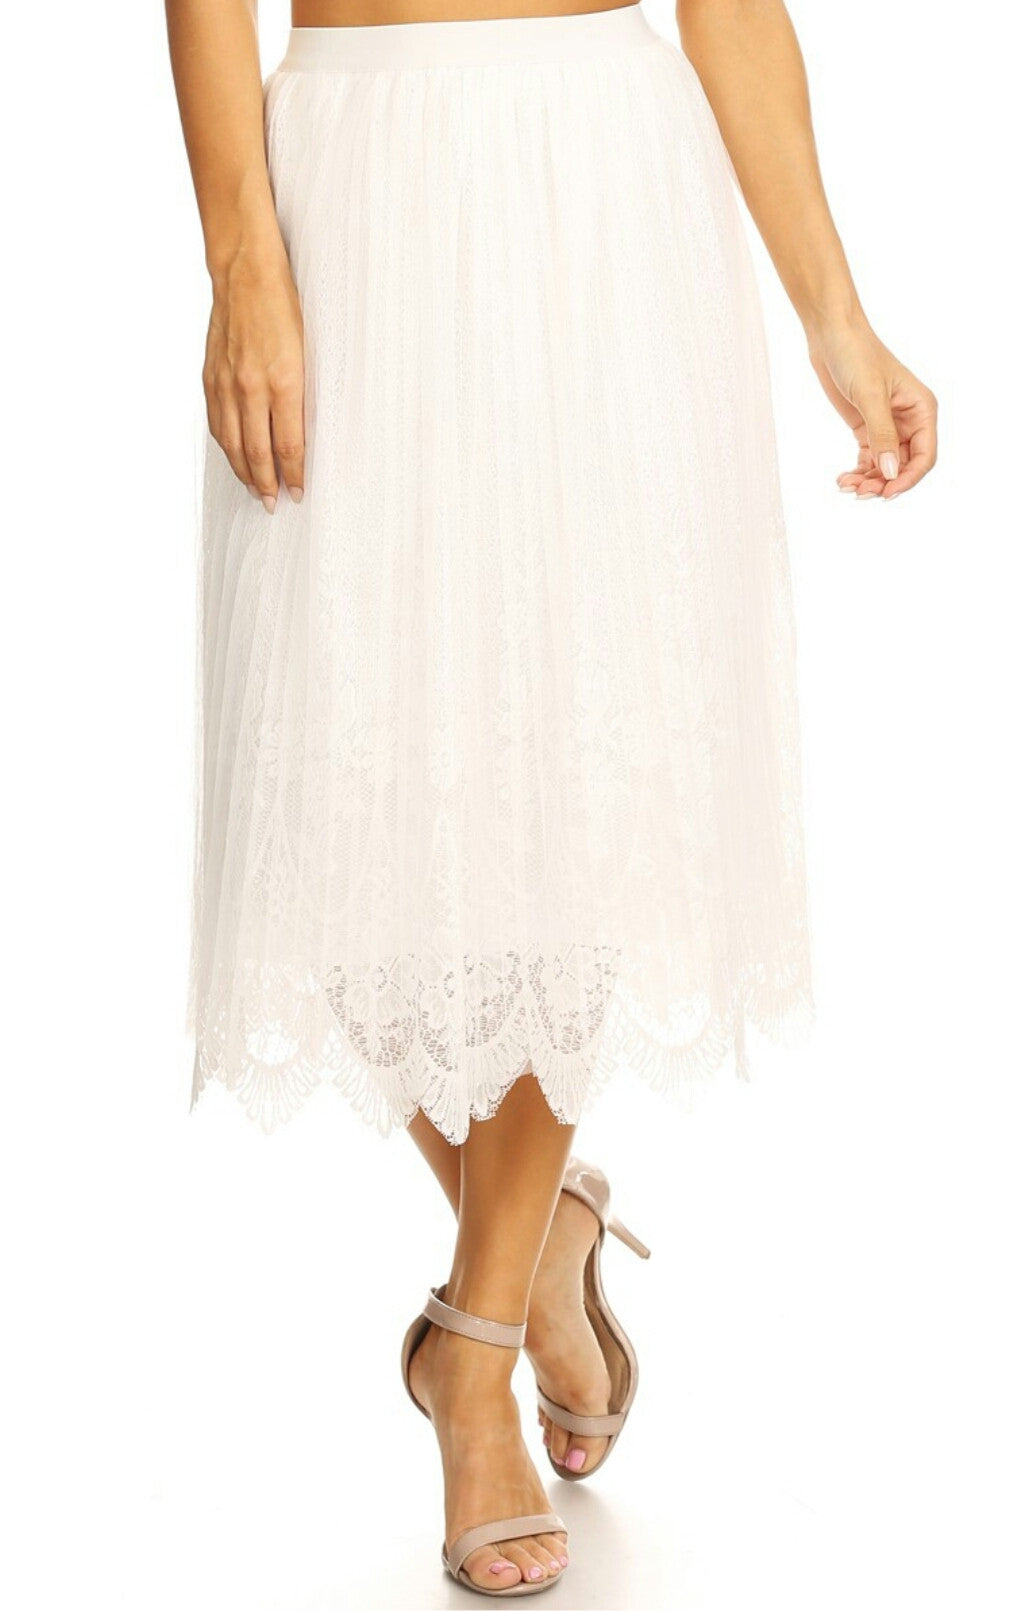 Evelyn Lace Skirt